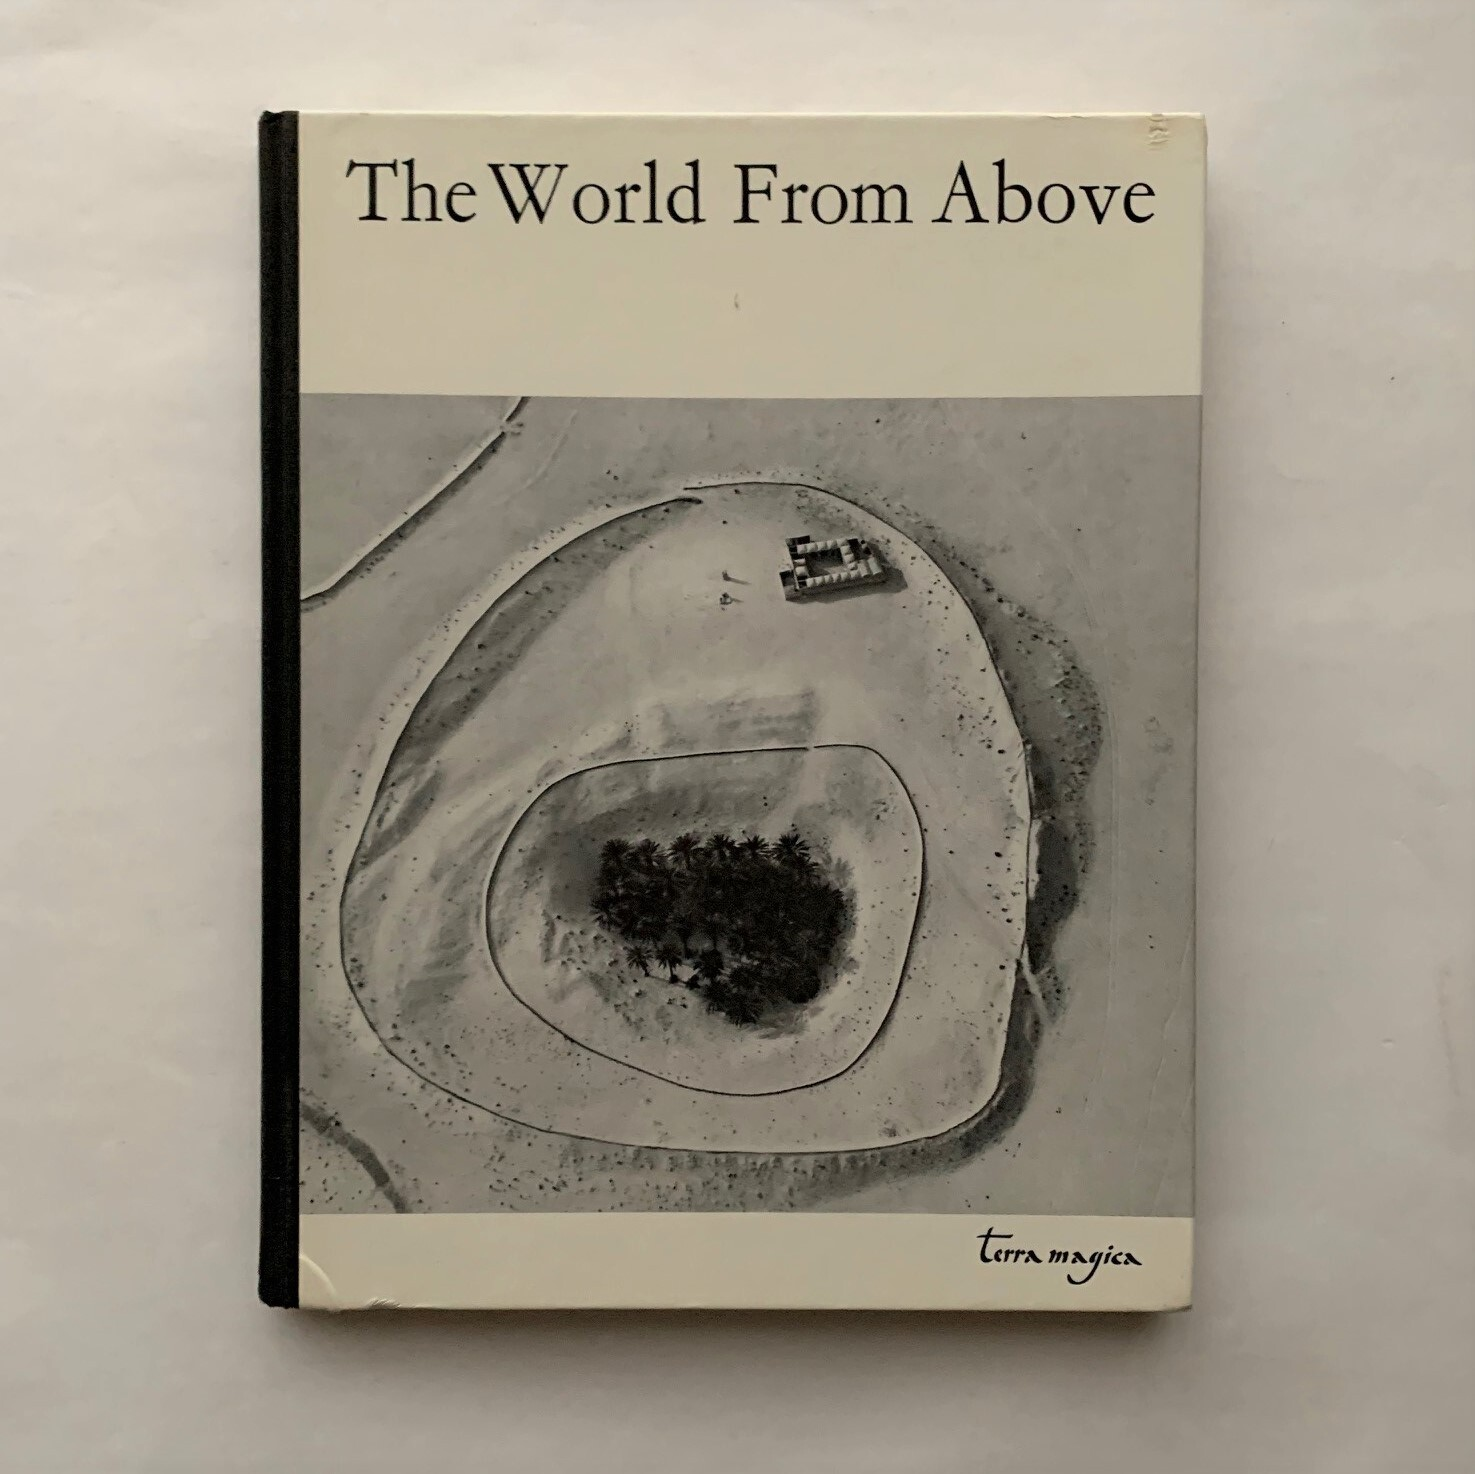 THE WORLD FROM ABOVE / A Terra Magica Book / Hill and Wang